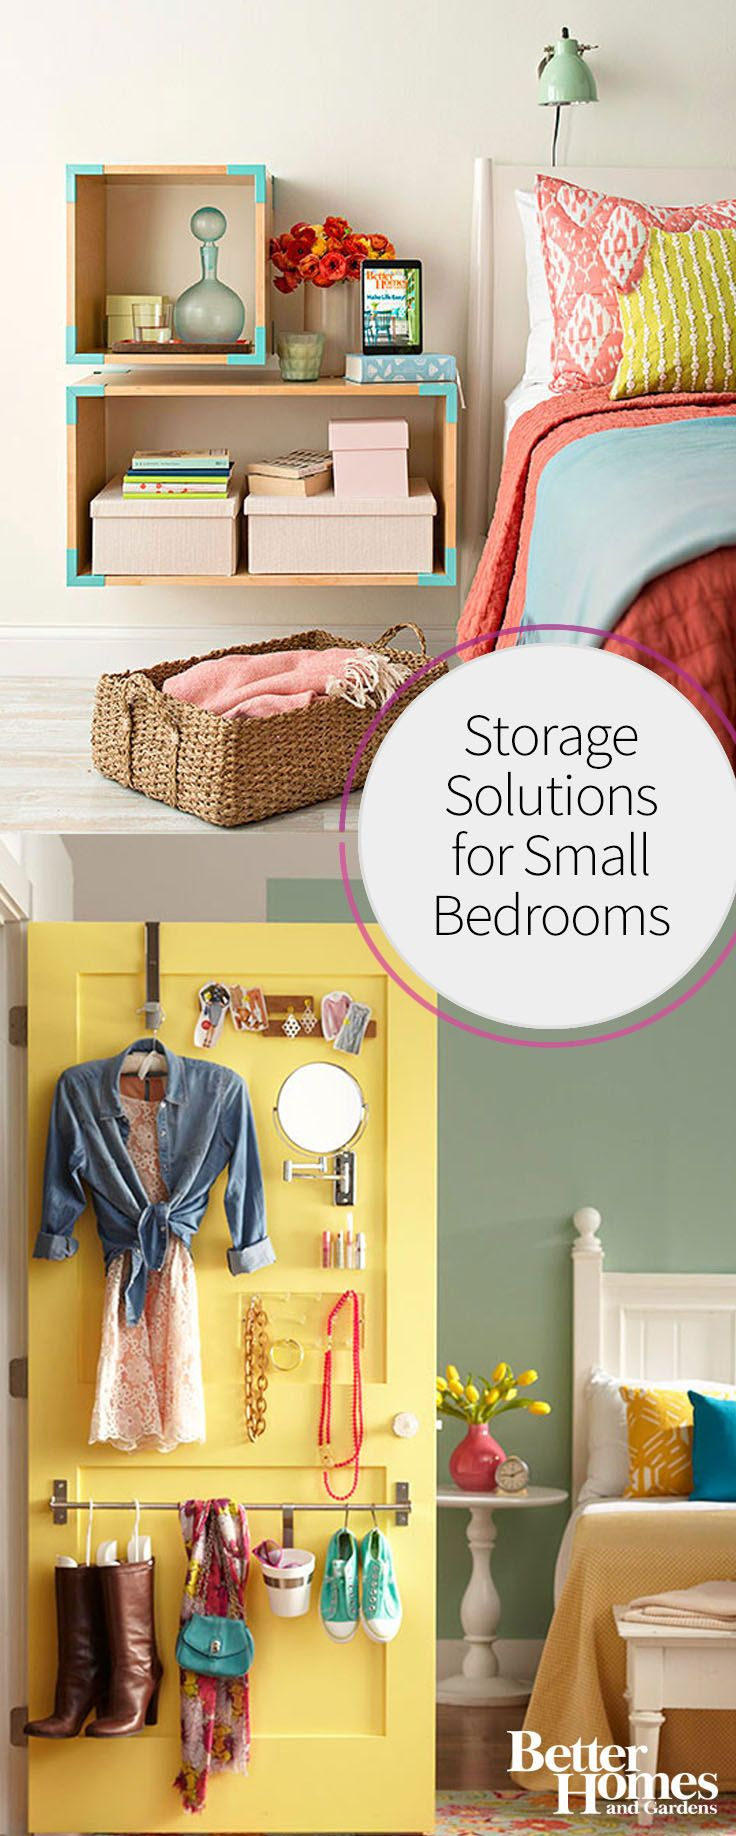 Bedroom storage ideas for small spaces - If You Have A Small Bedroom Use This Guide To Plan Smart Storage Solutions That